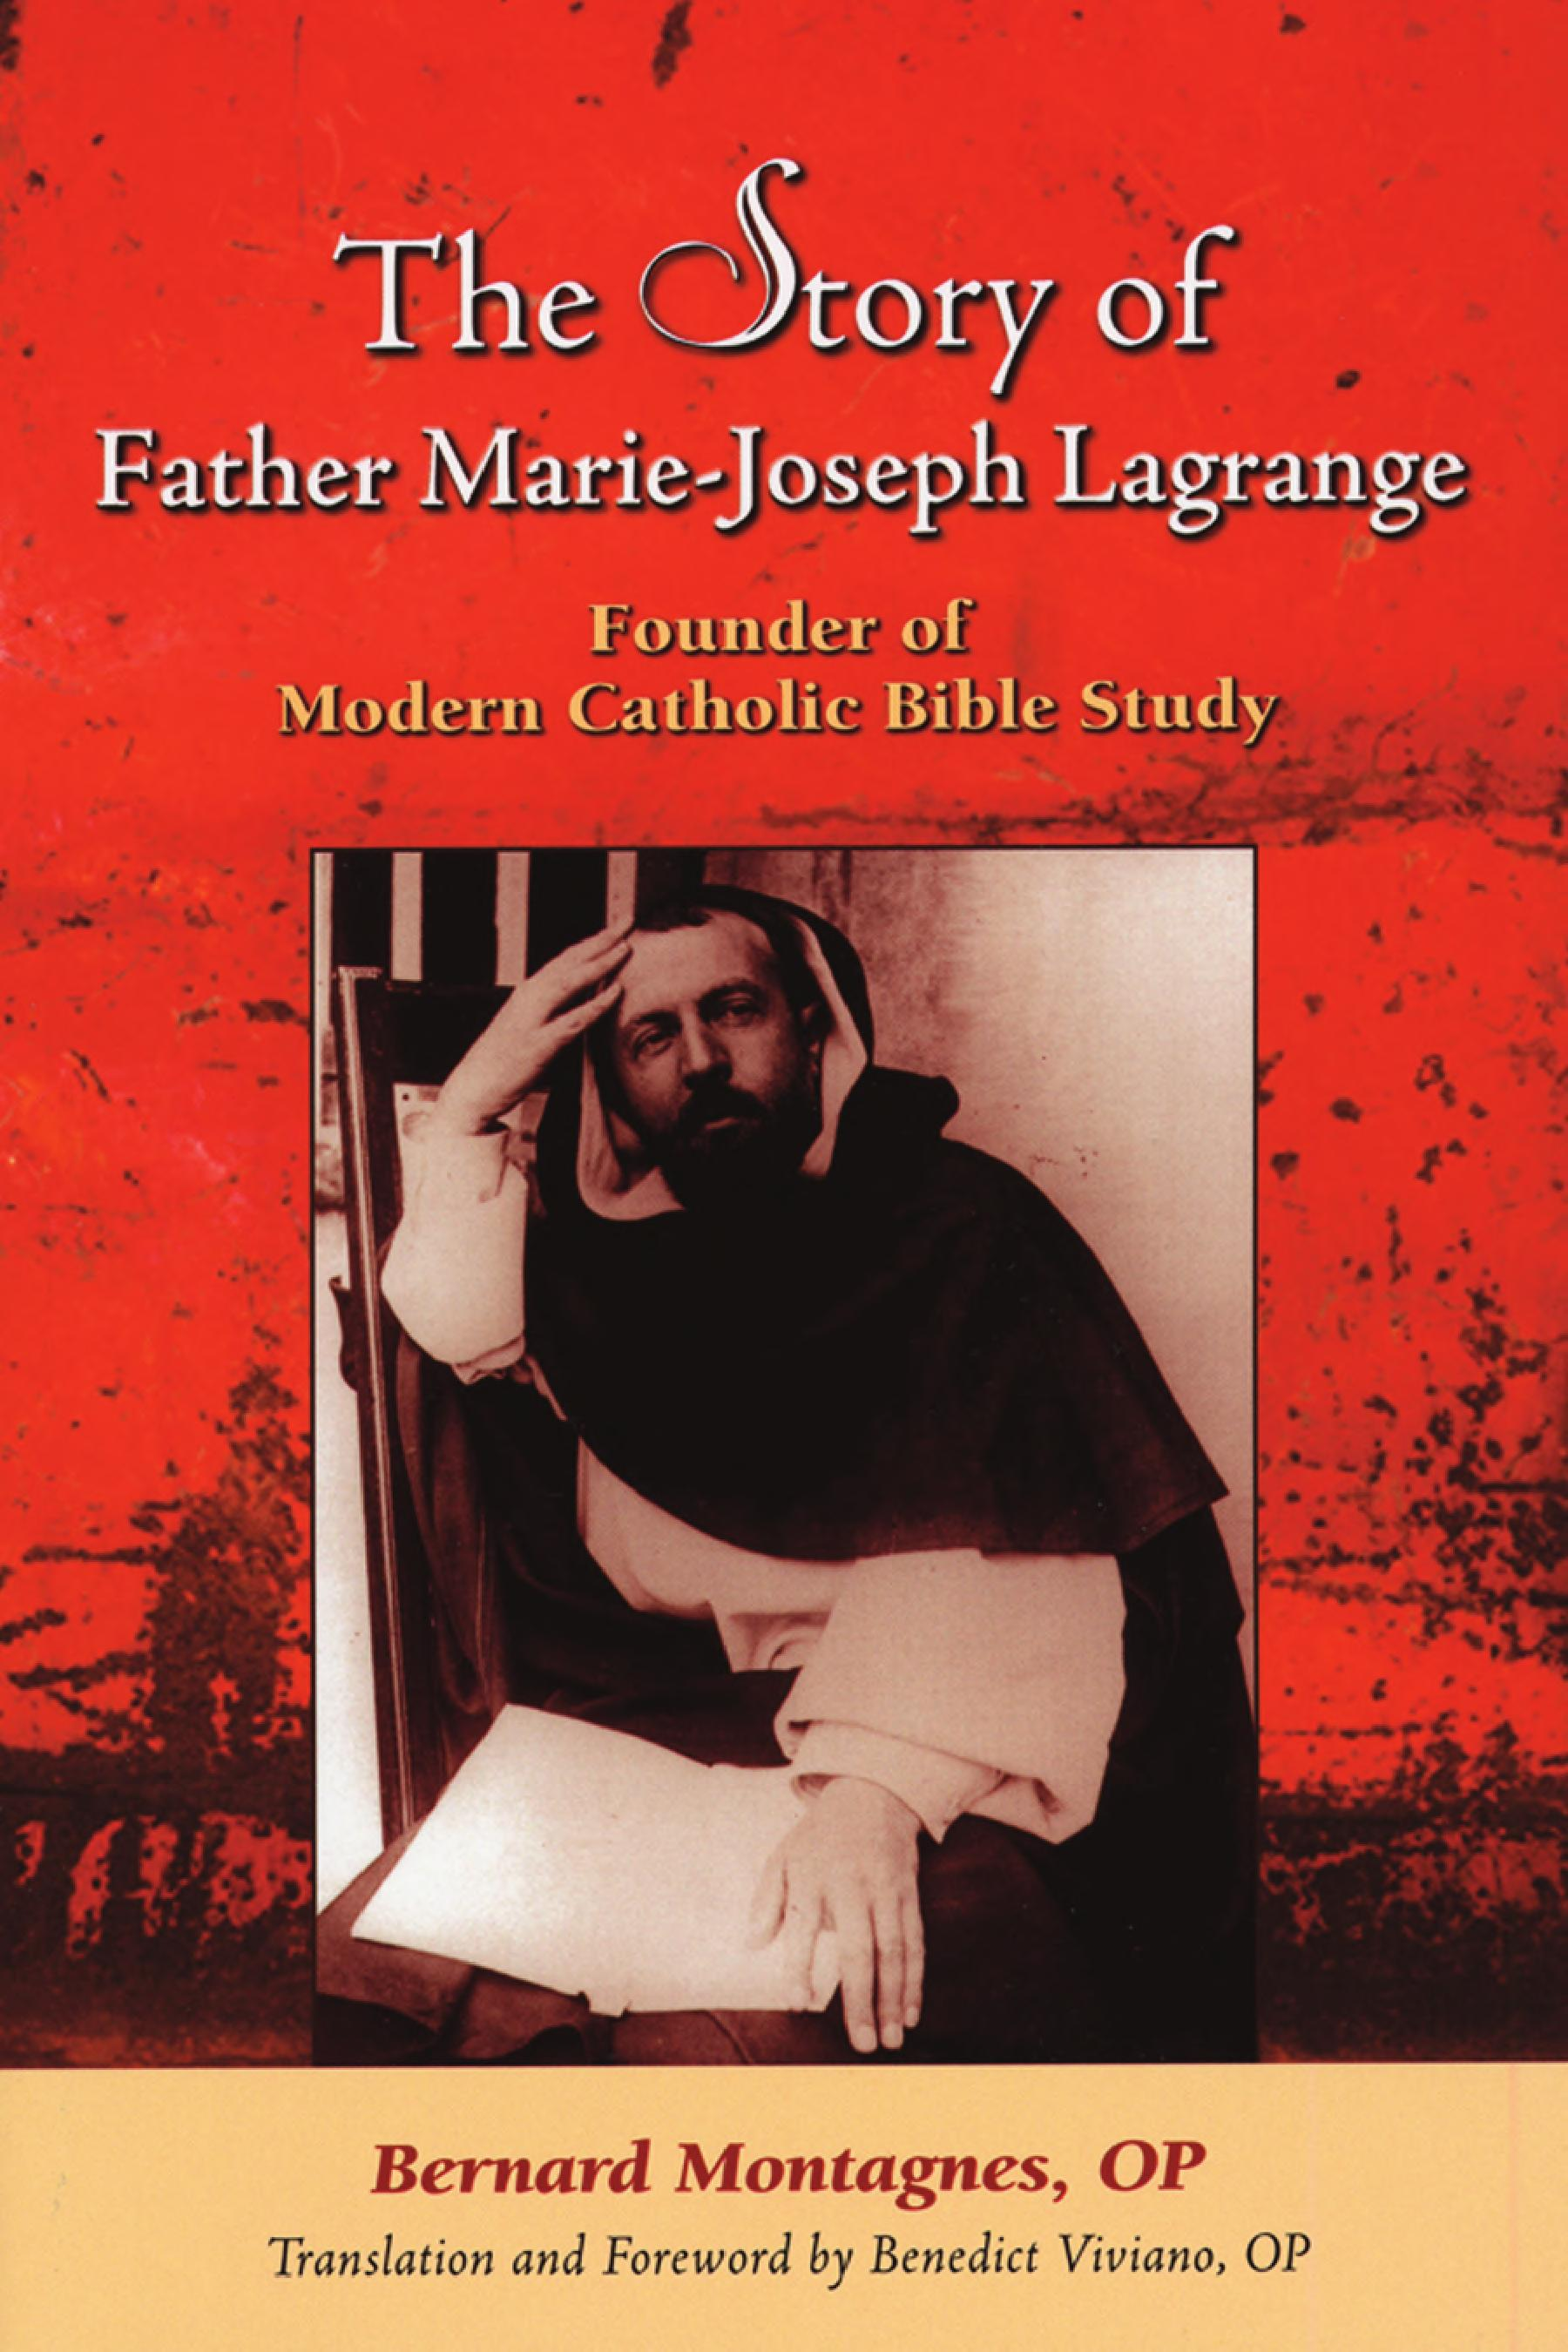 The Story of Father Marie Joseph Lagrange